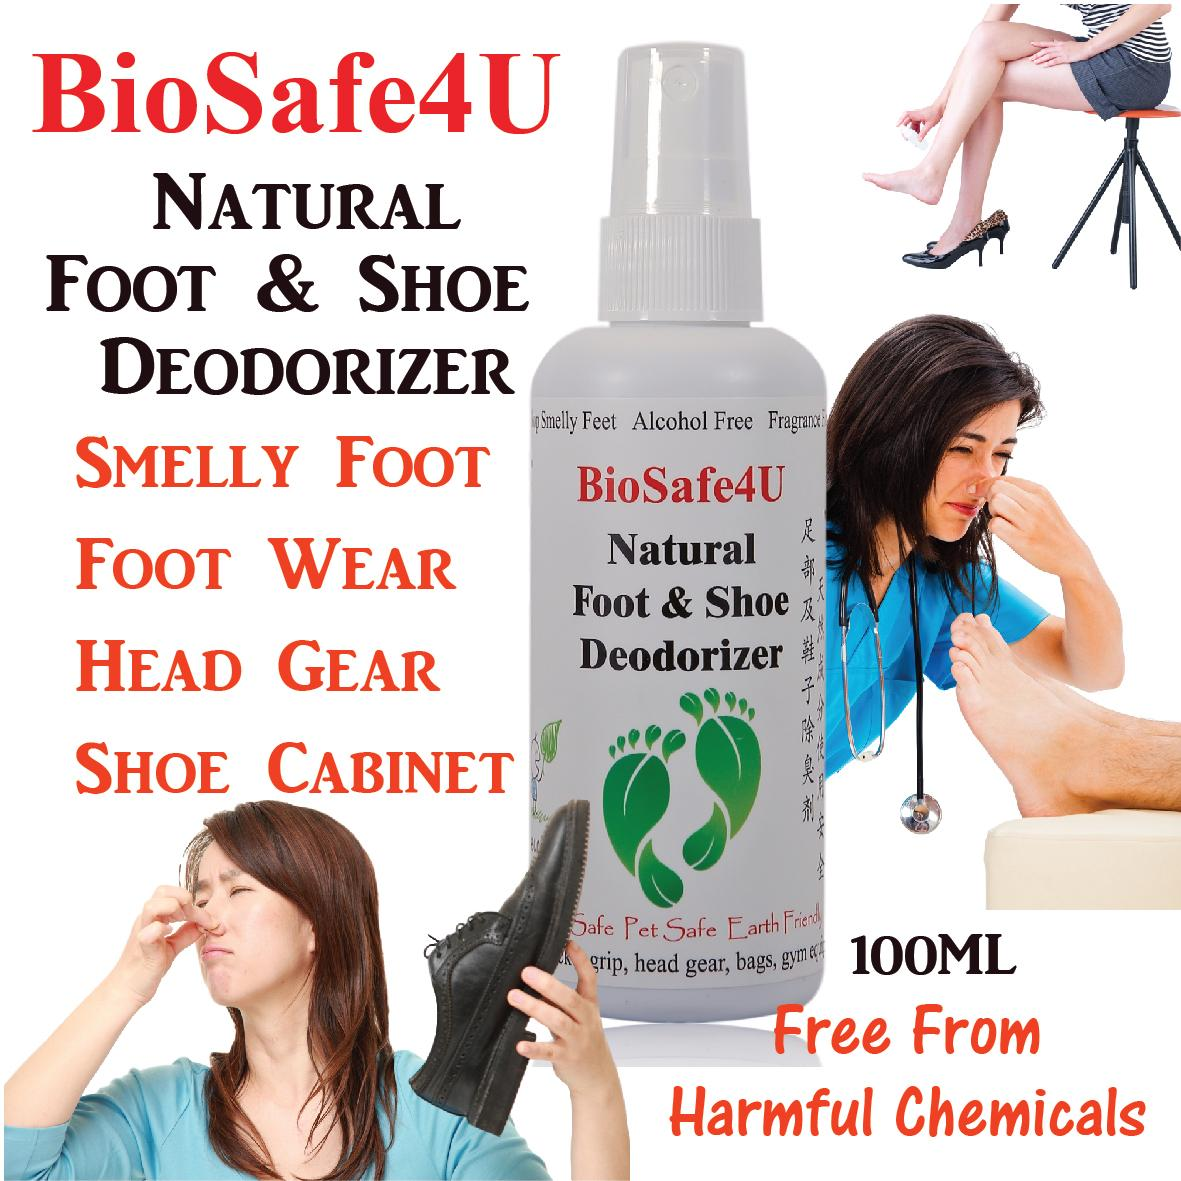 Biosafe4U Natural Foot Shoe Deodorizer Coupon